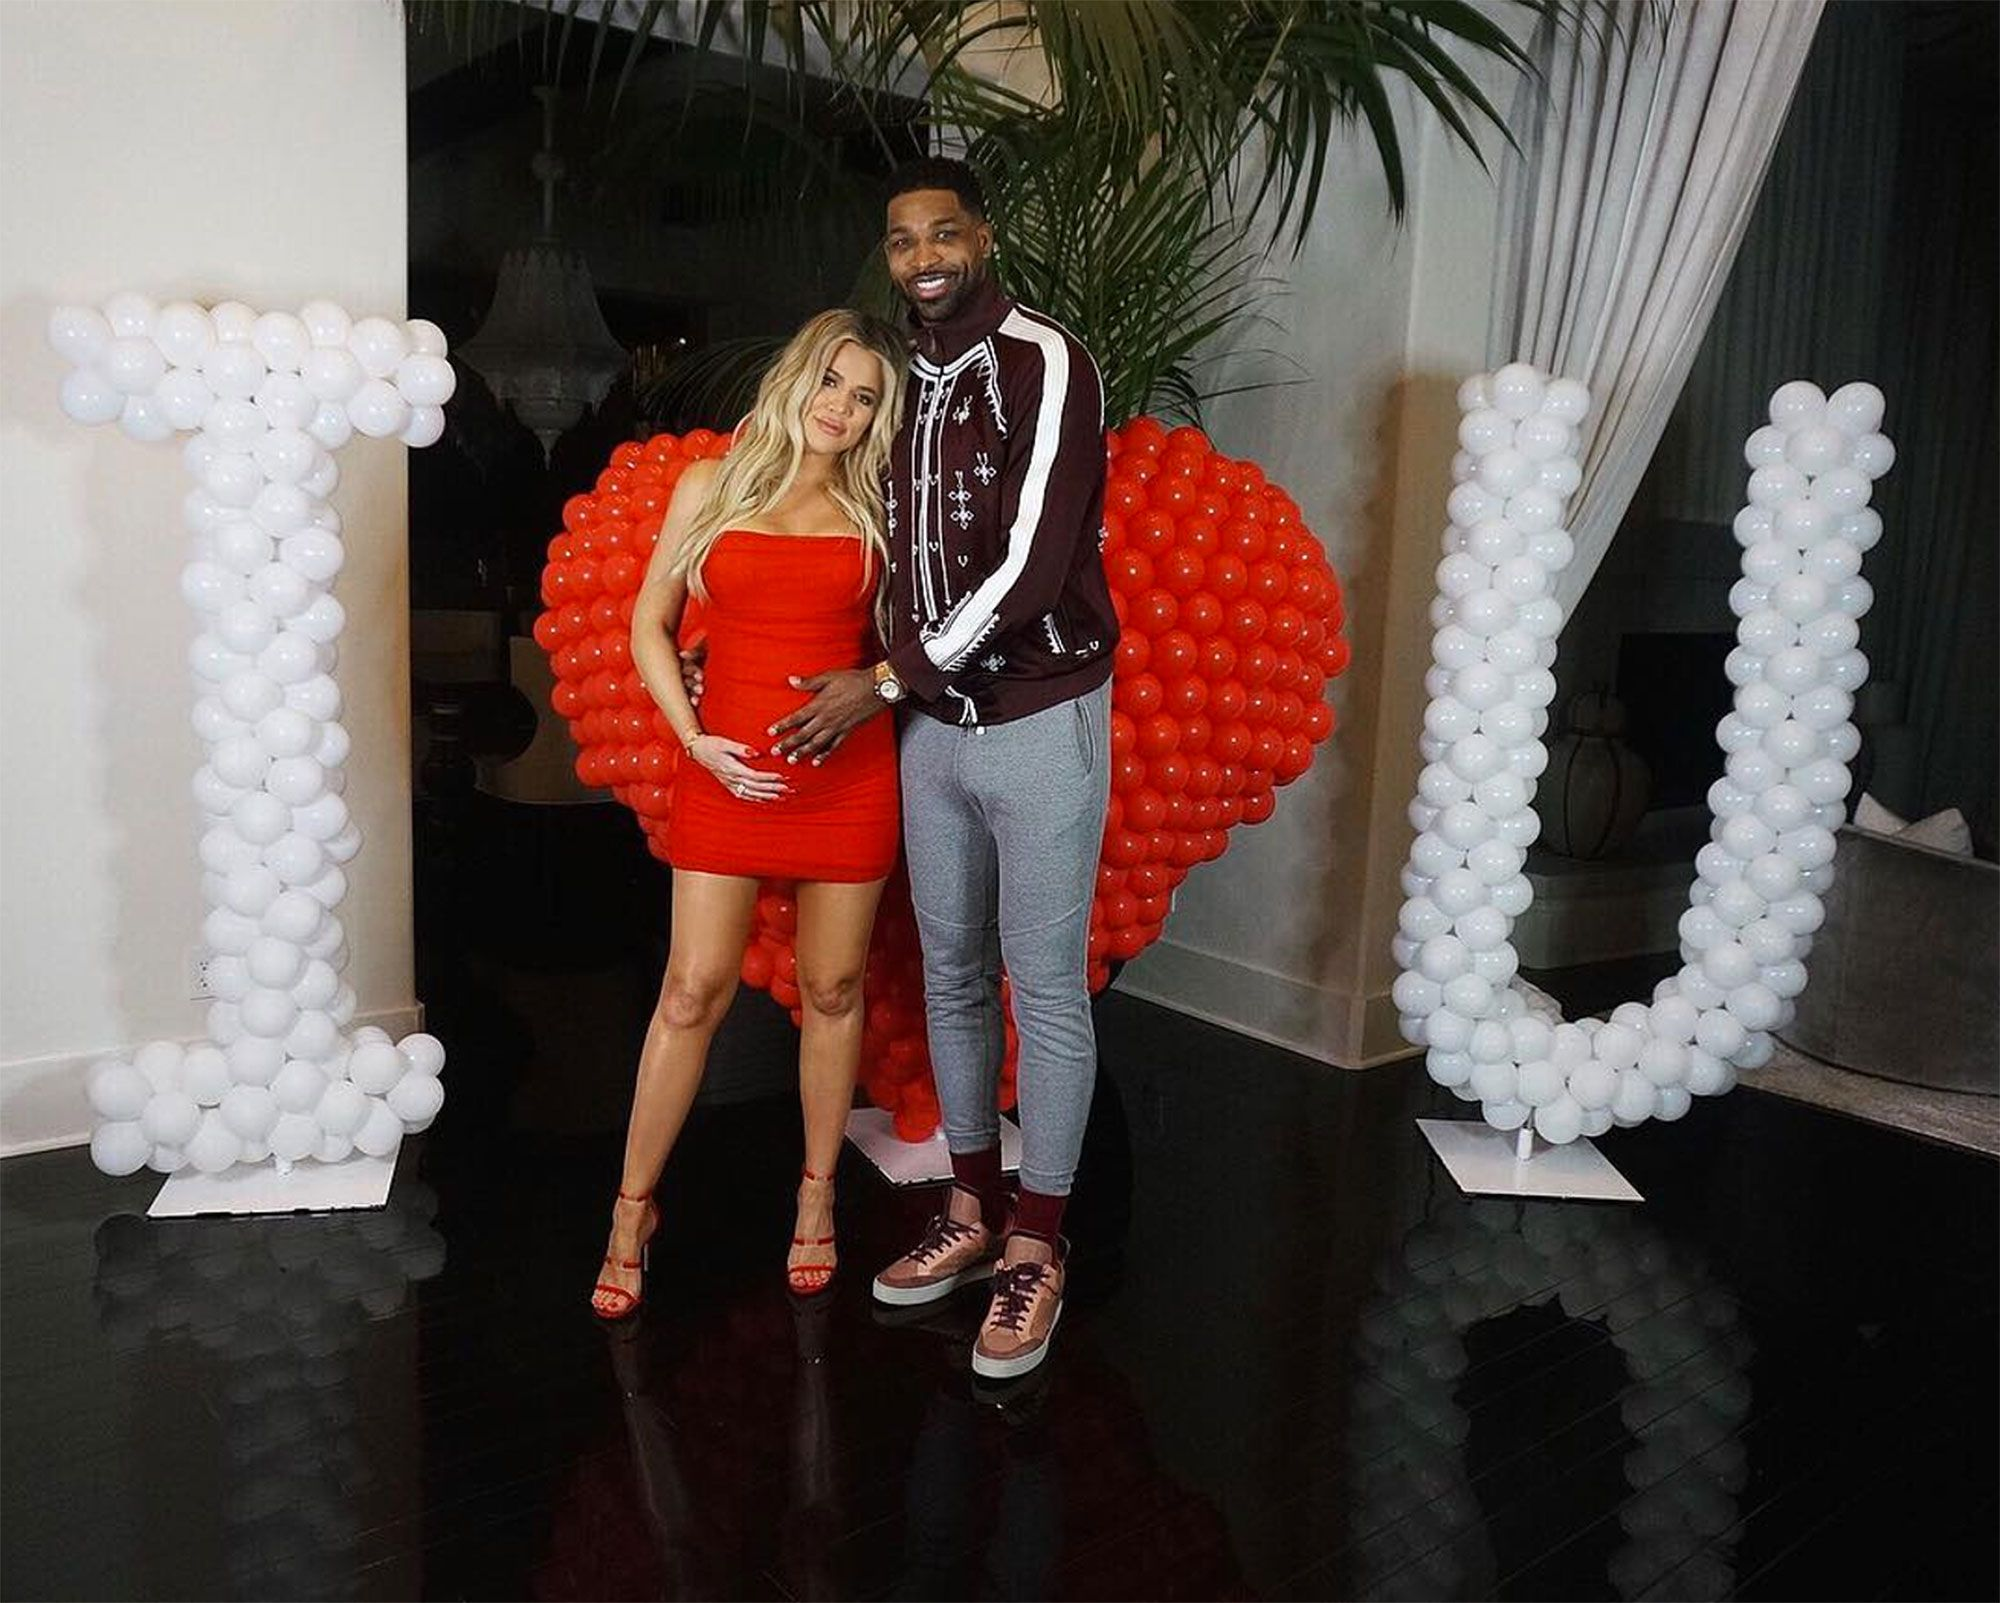 Khloe and Tristan posing for the cameras